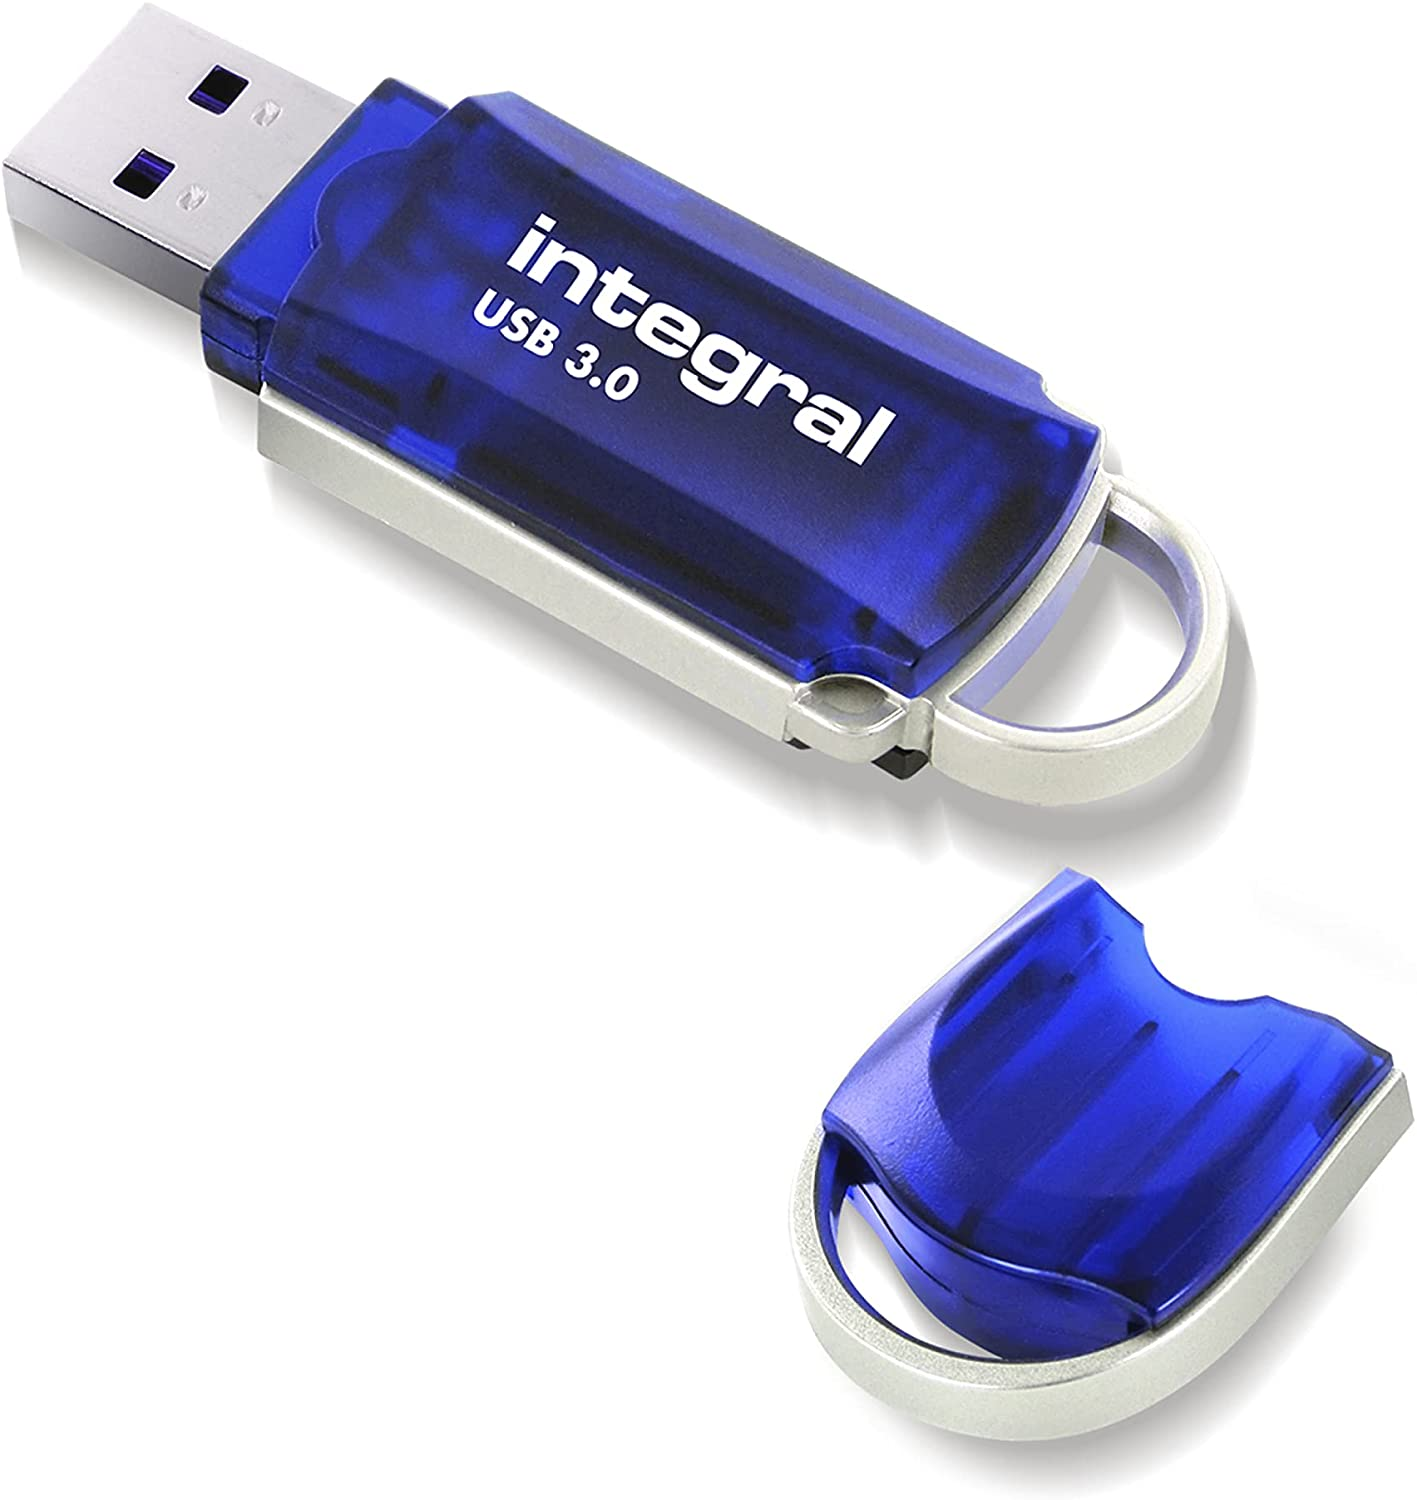 16GB Integral Courier USB 3.0 Flash Dr